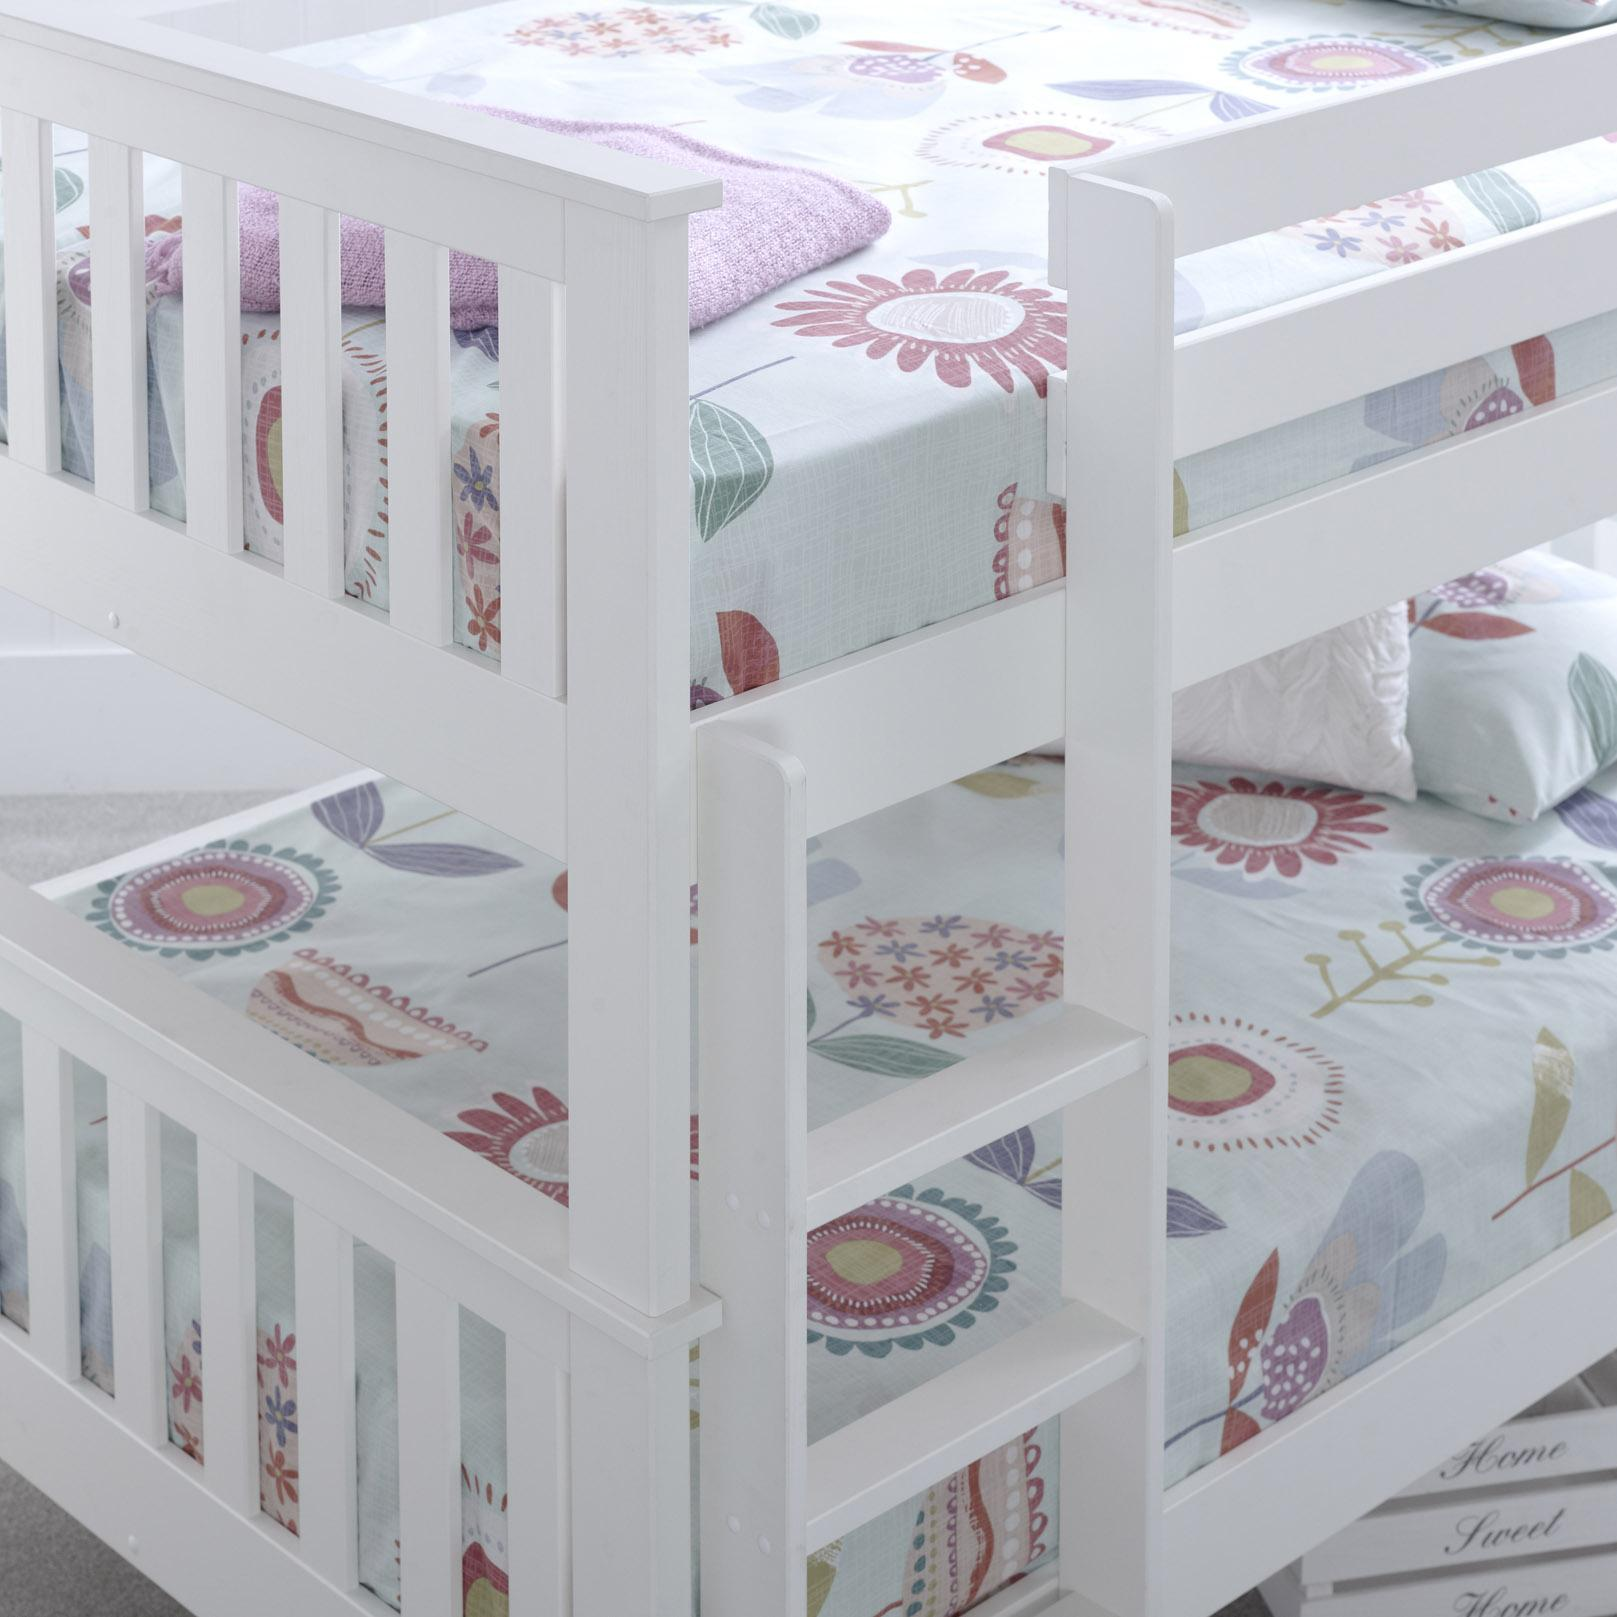 Oslo 4ft Over 4ft Bunk Bed